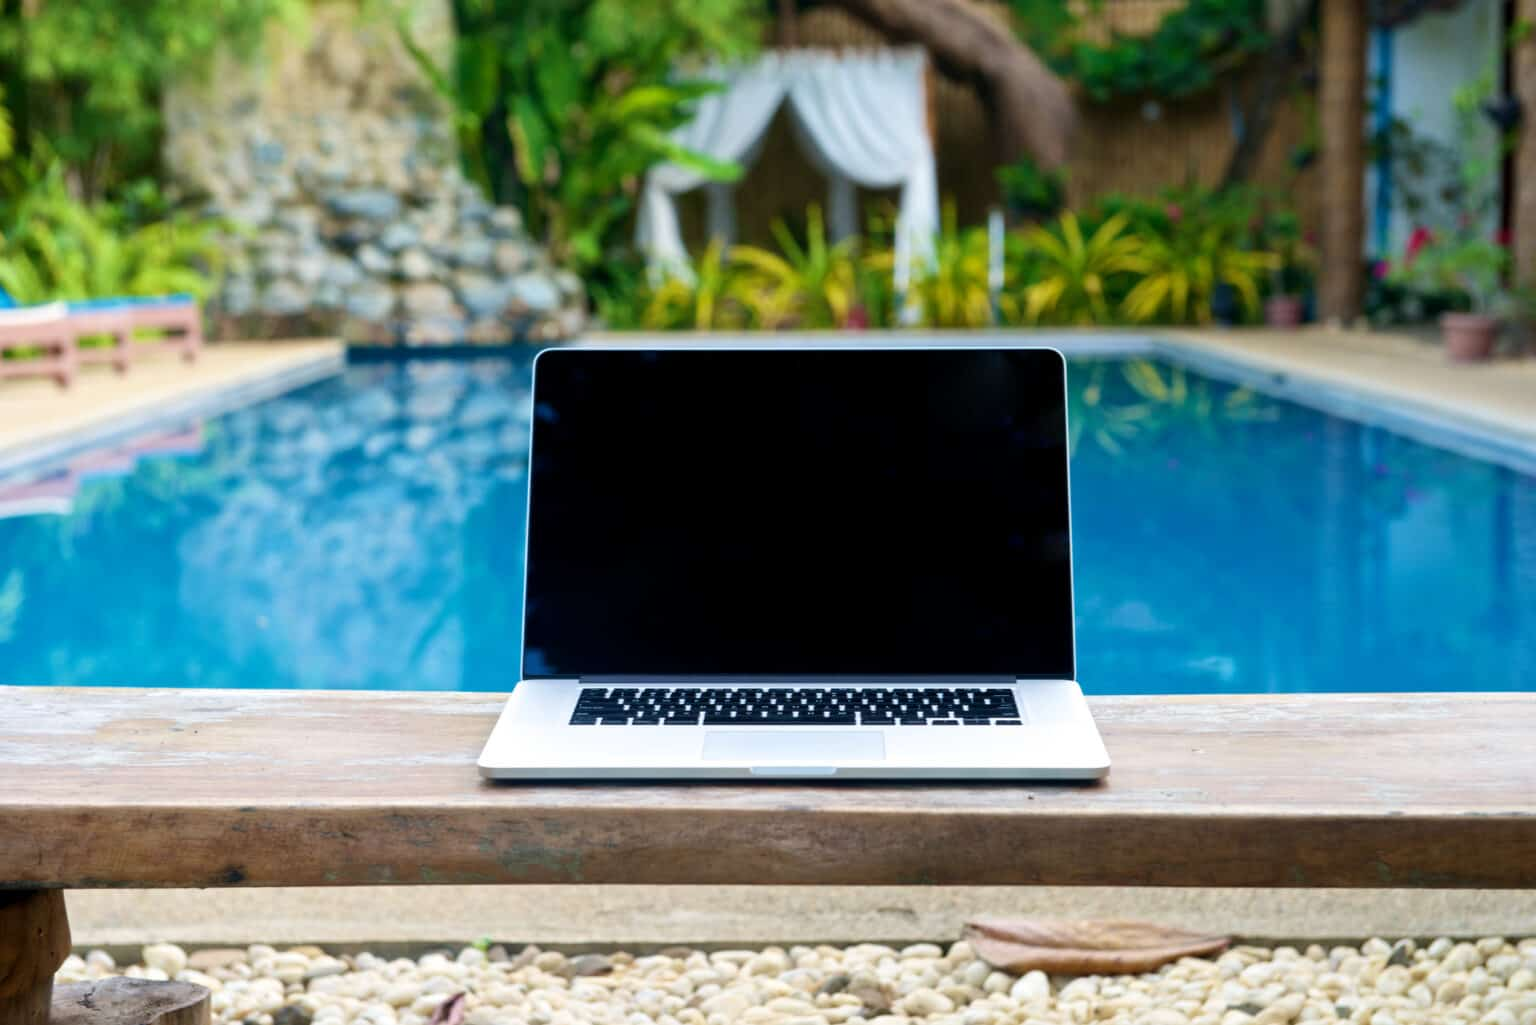 Laptop on a bench by the pool, working on vacation with mobility concept